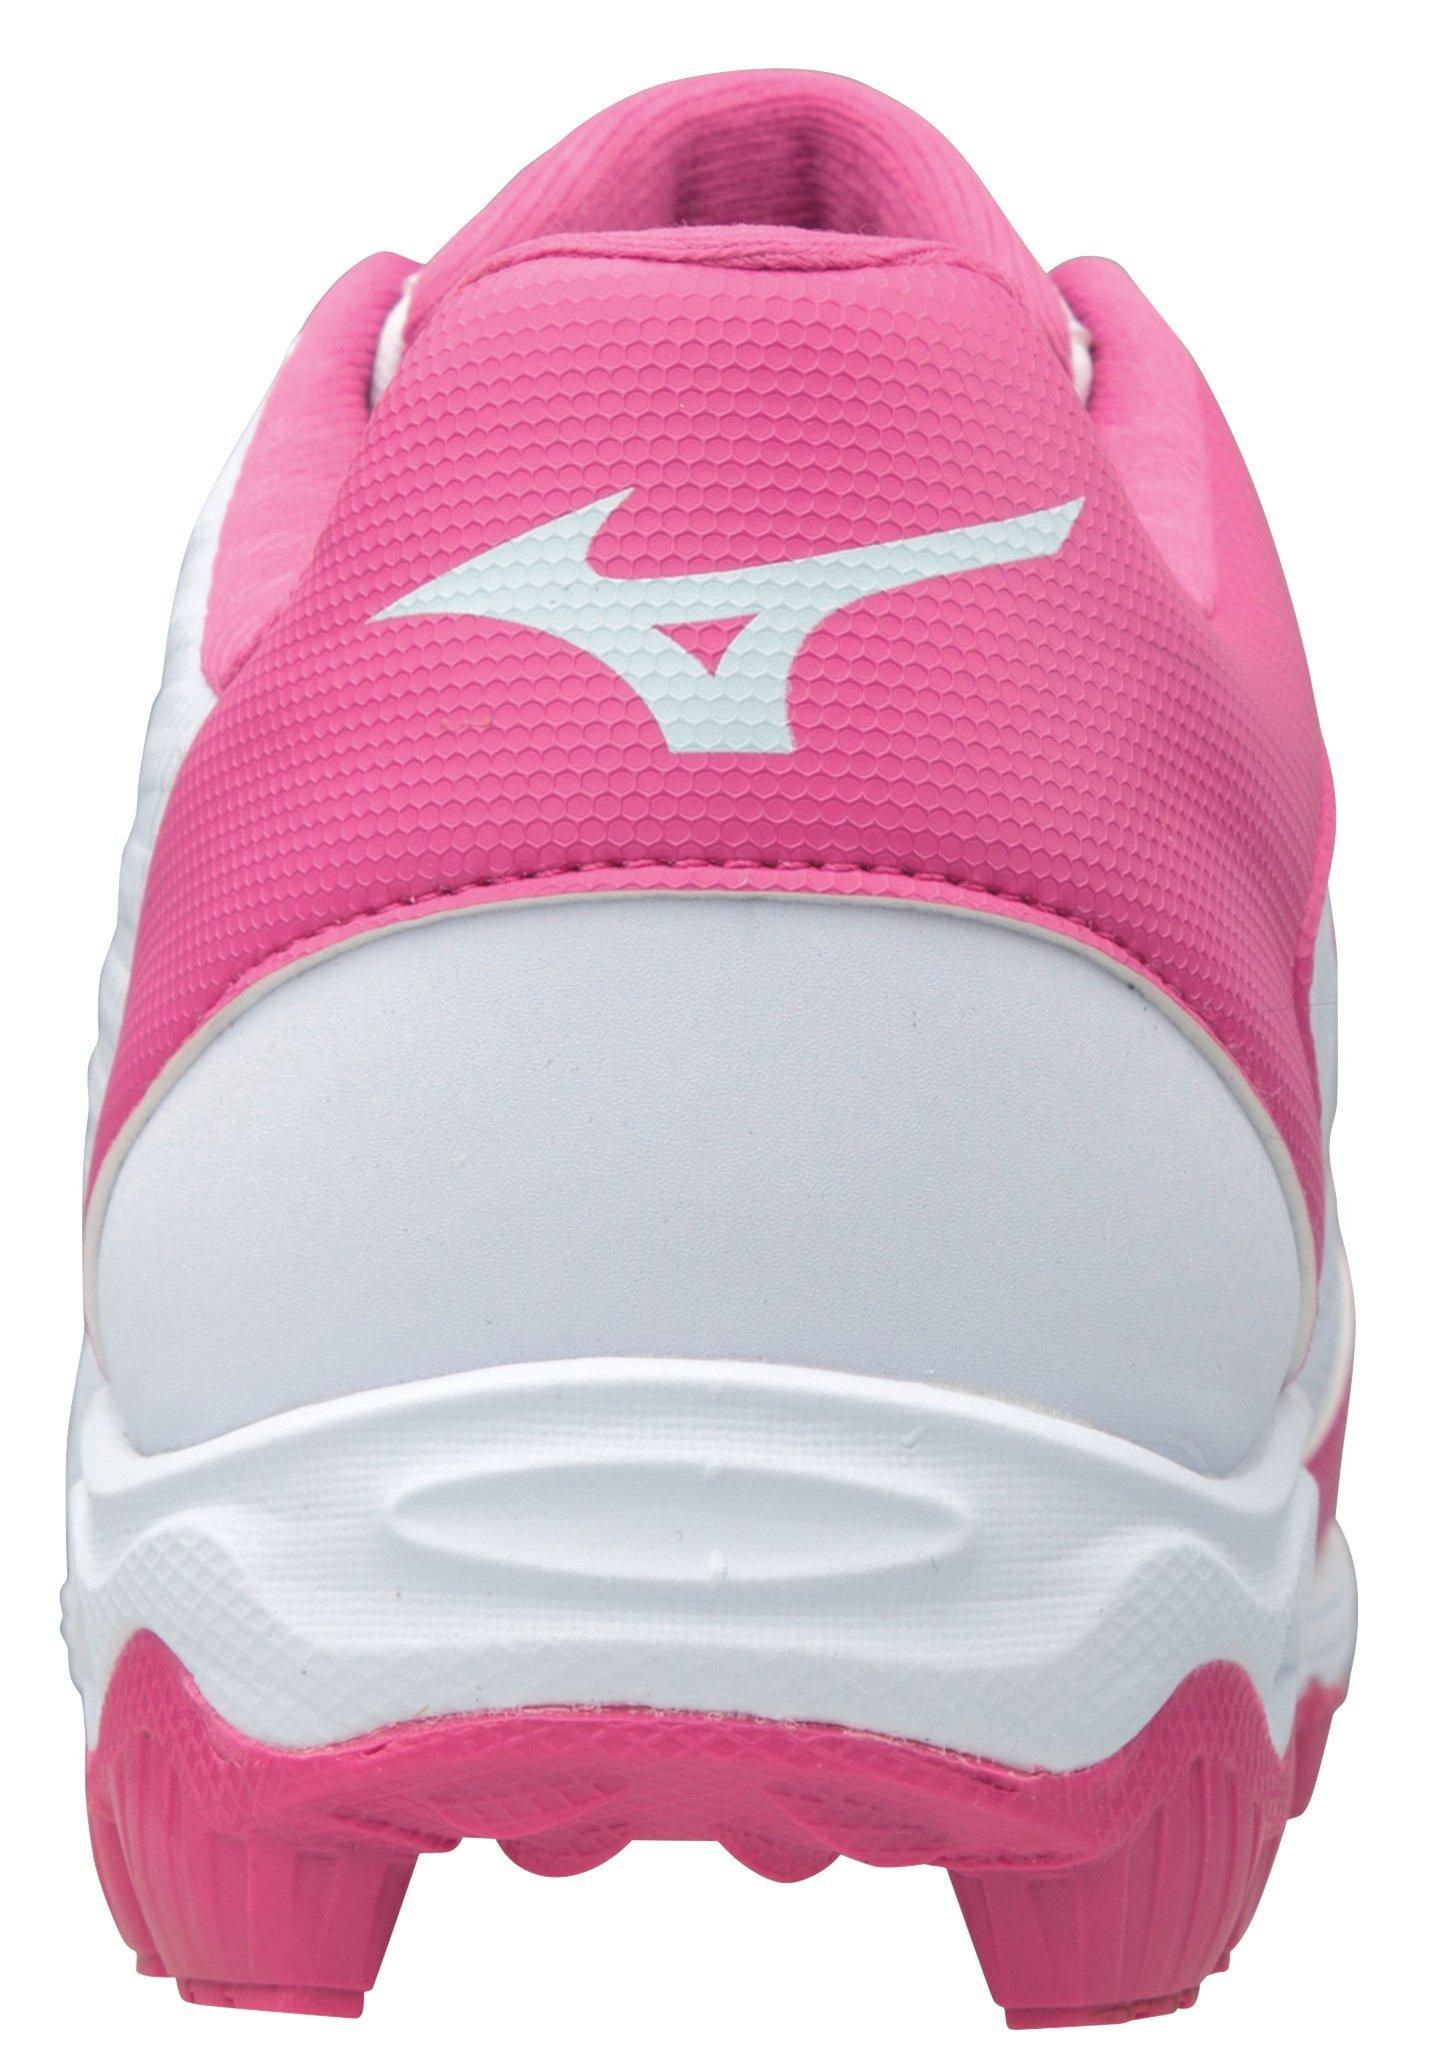 Mizuno 9-spike Pink Black Advanced Softball Cleats Youth Franchise 7 Size 8.5 SP for sale online